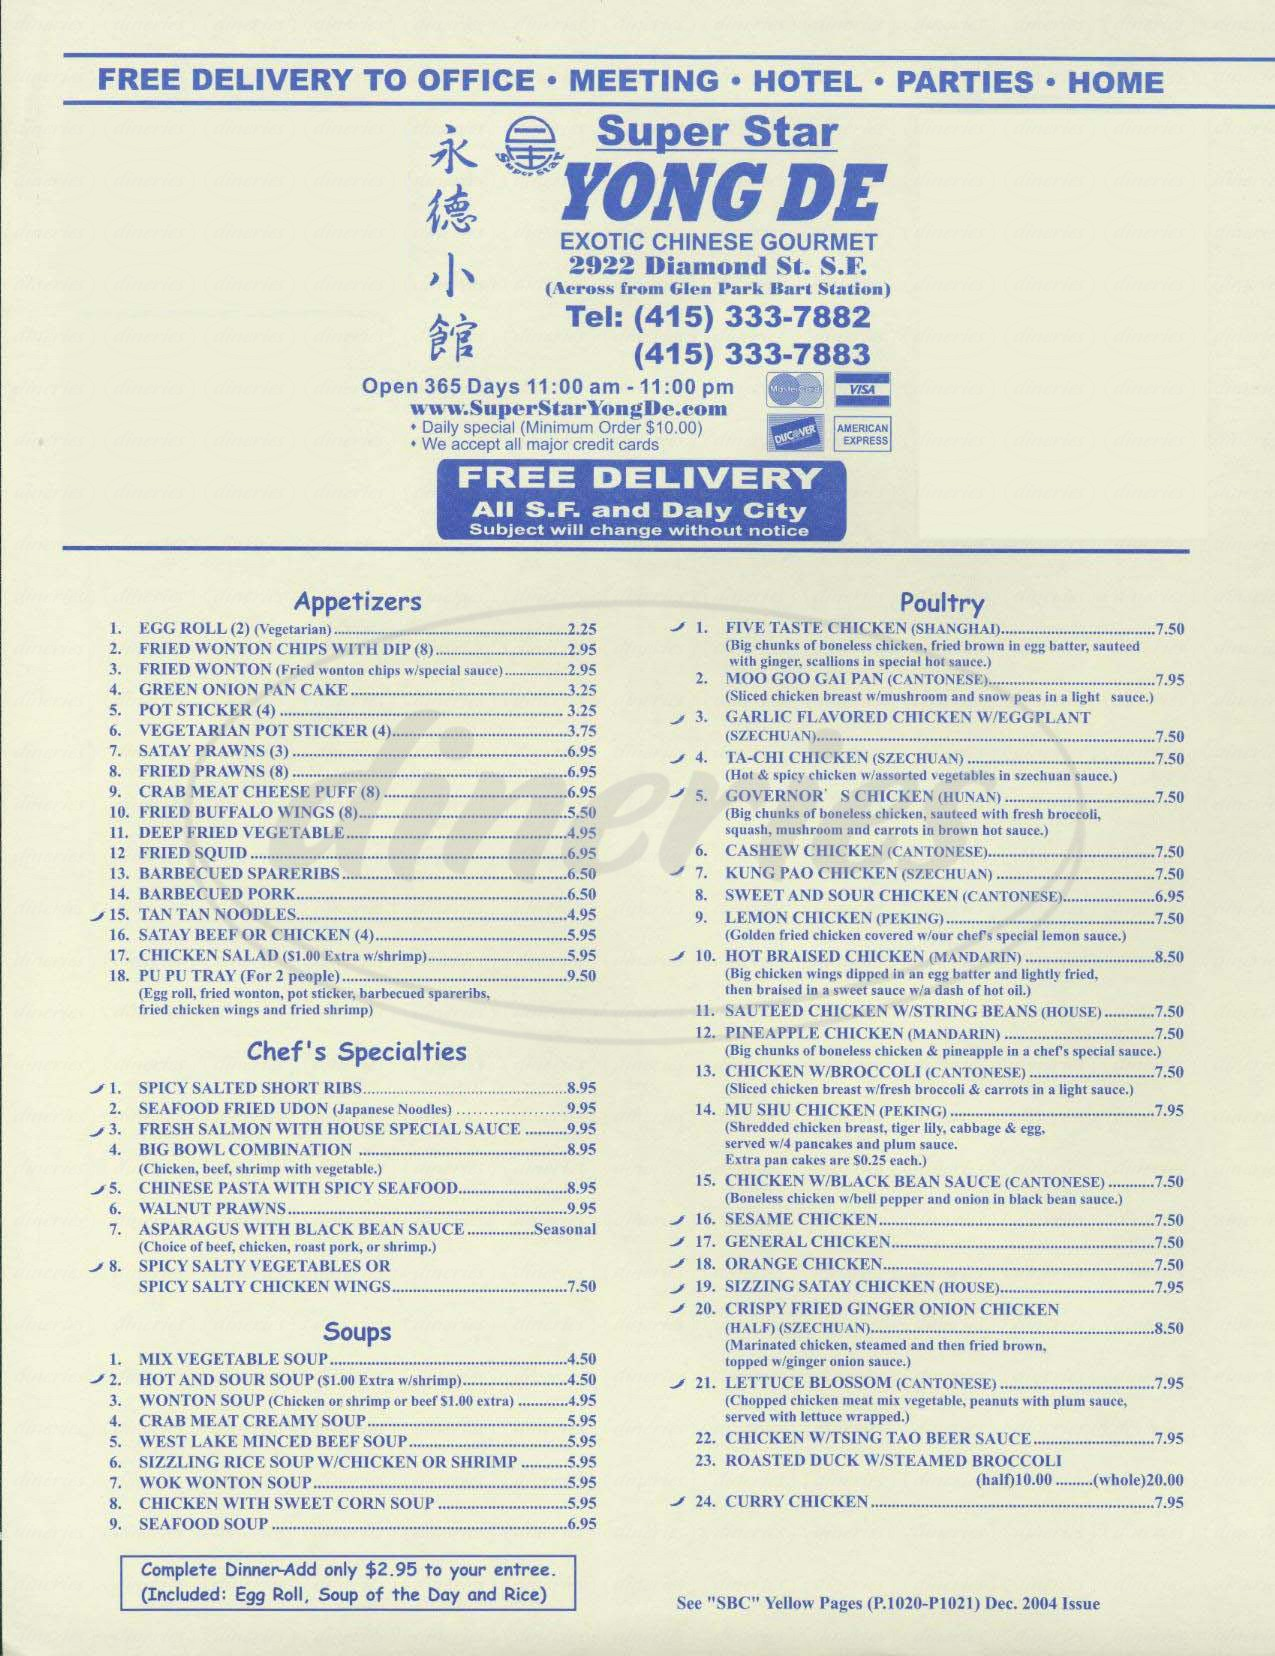 menu for Super Star Yong De